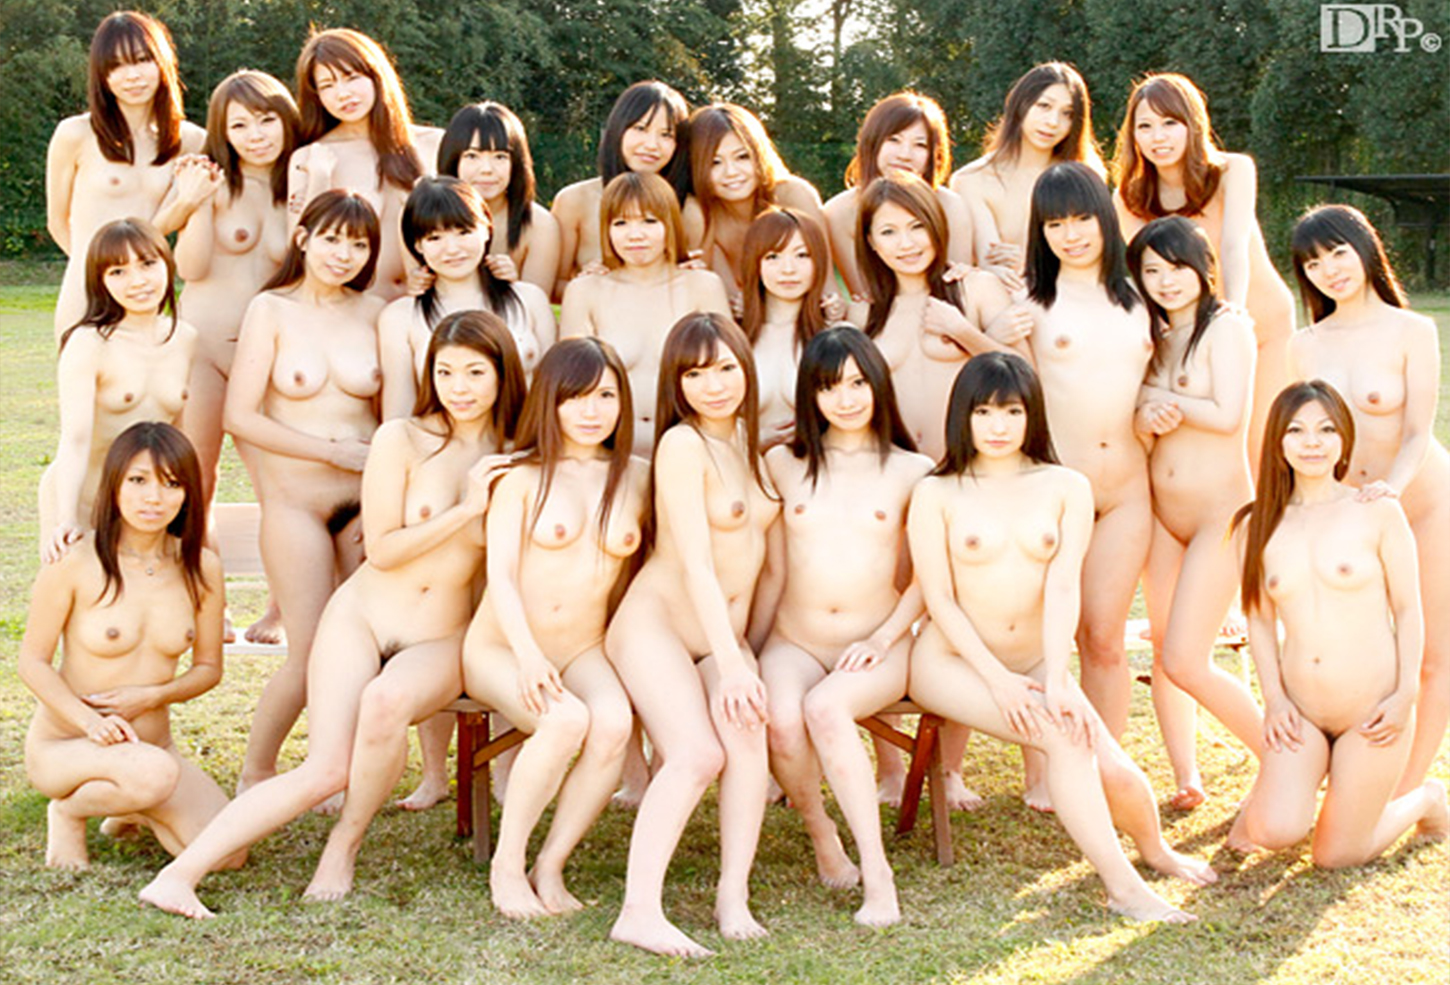 Cute girl group naked